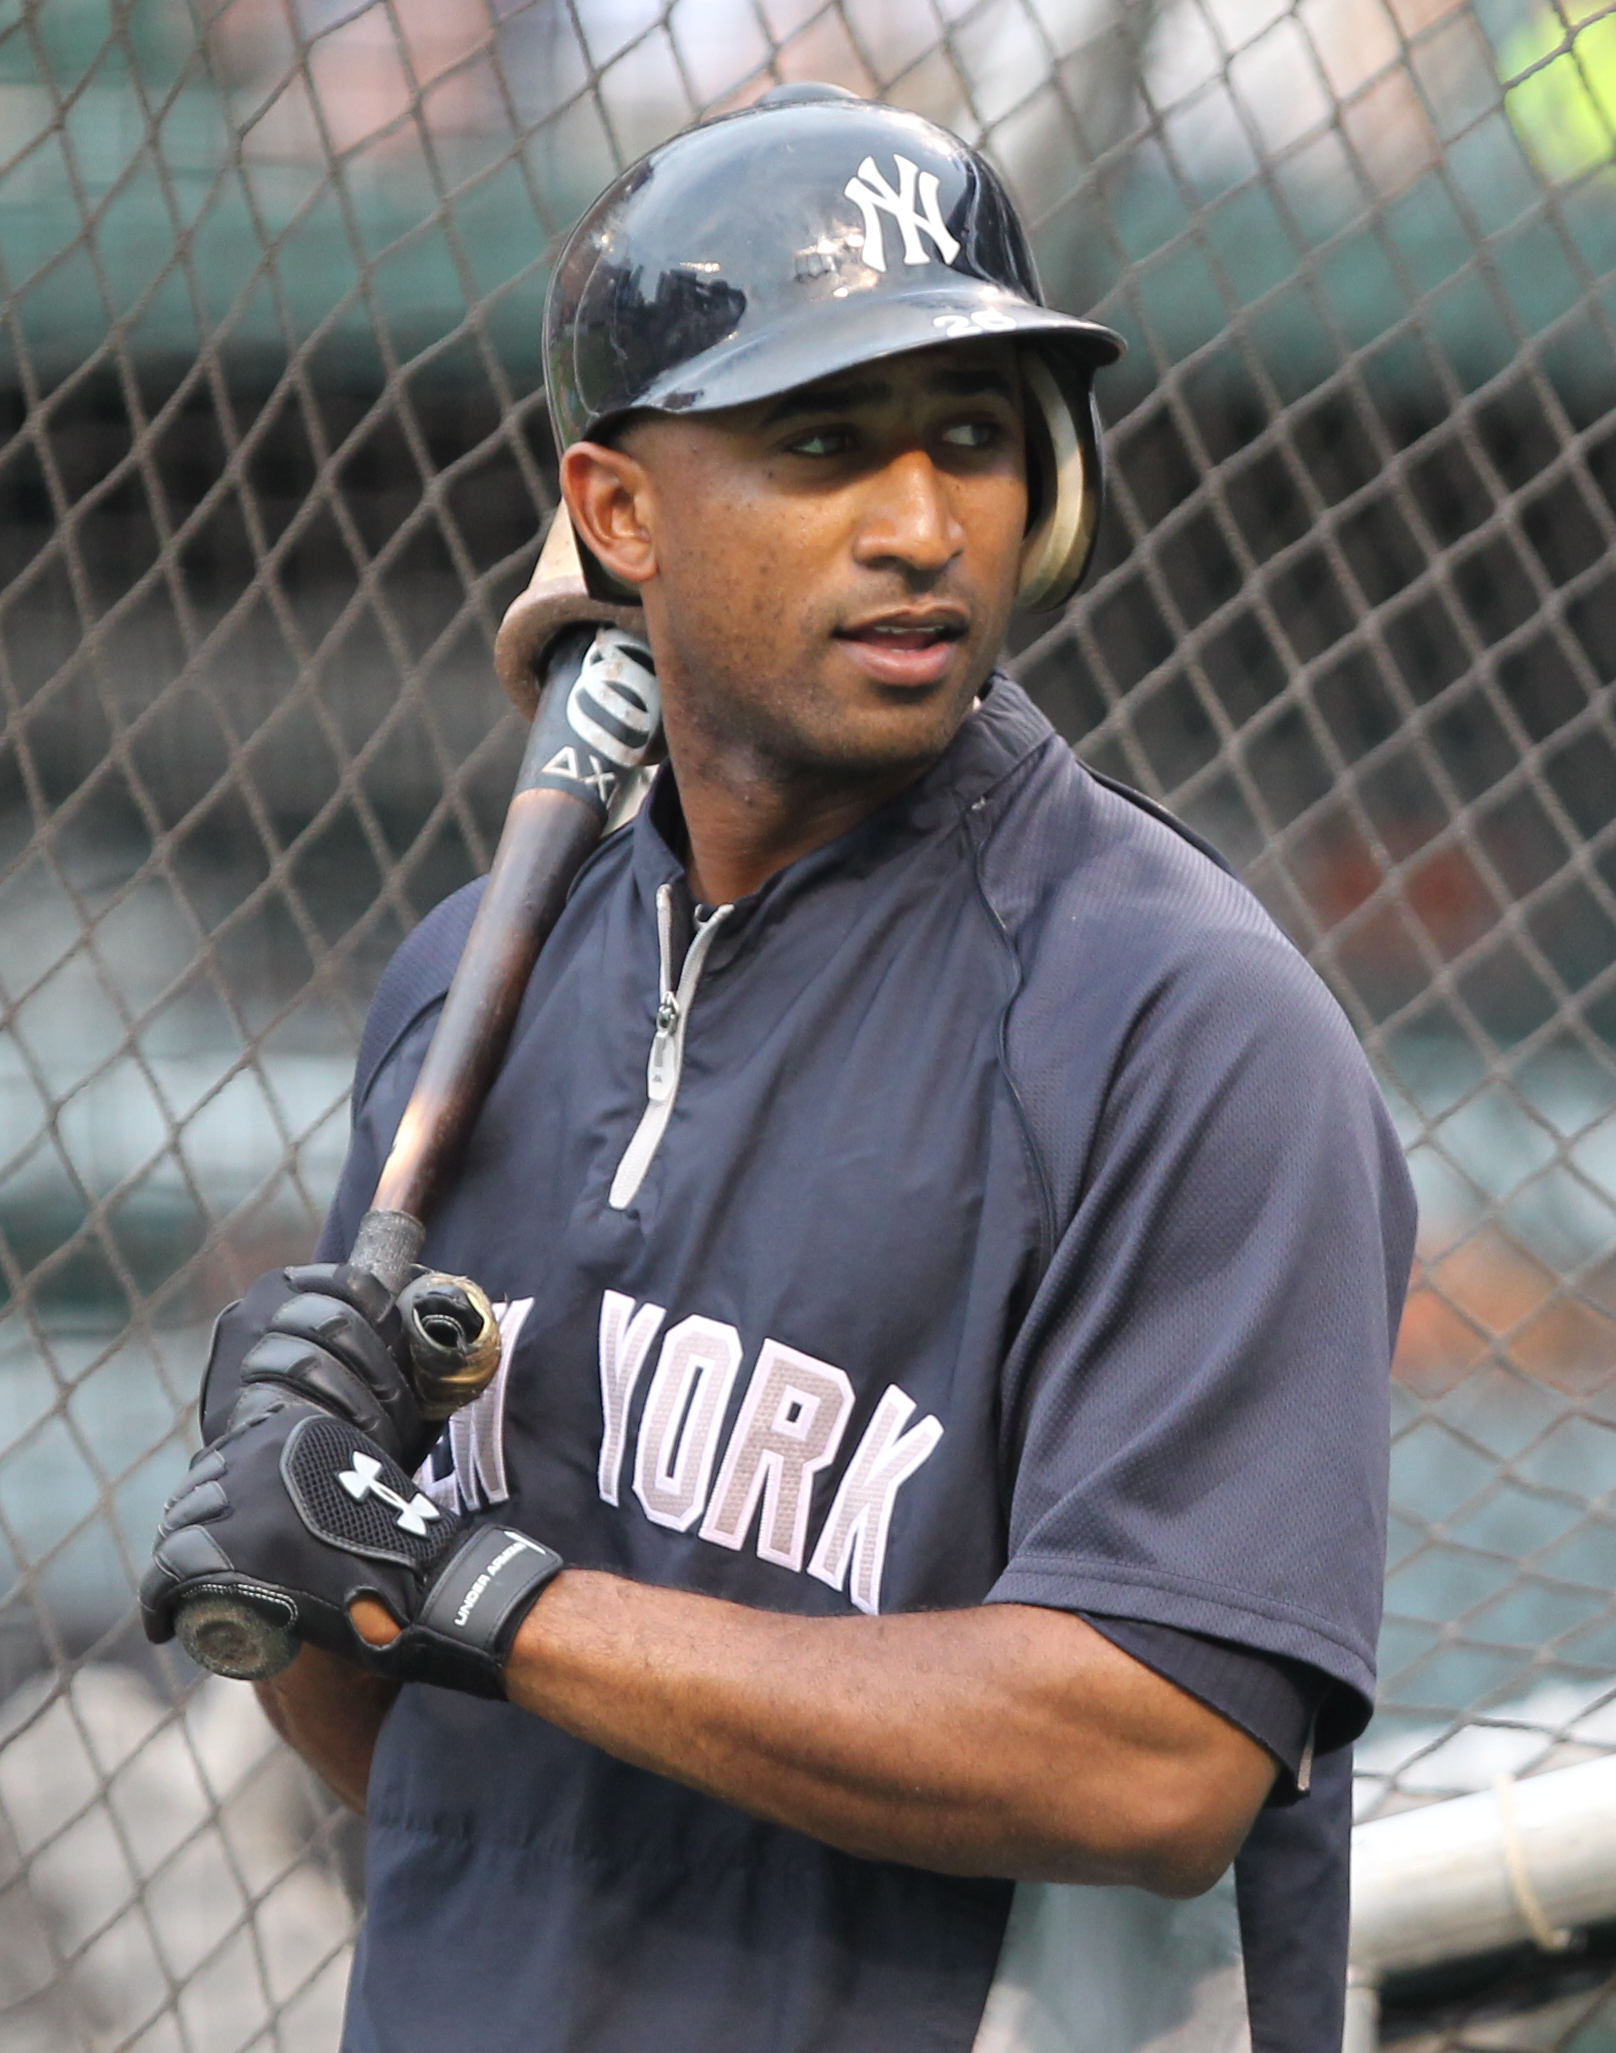 In the year 2007, Eduardo Nunez was promoted to Tampa Yankees of the Class A-Advanced Florida State League from Charleston RiverDogs of the Class A South Atlantic League (SAL)?